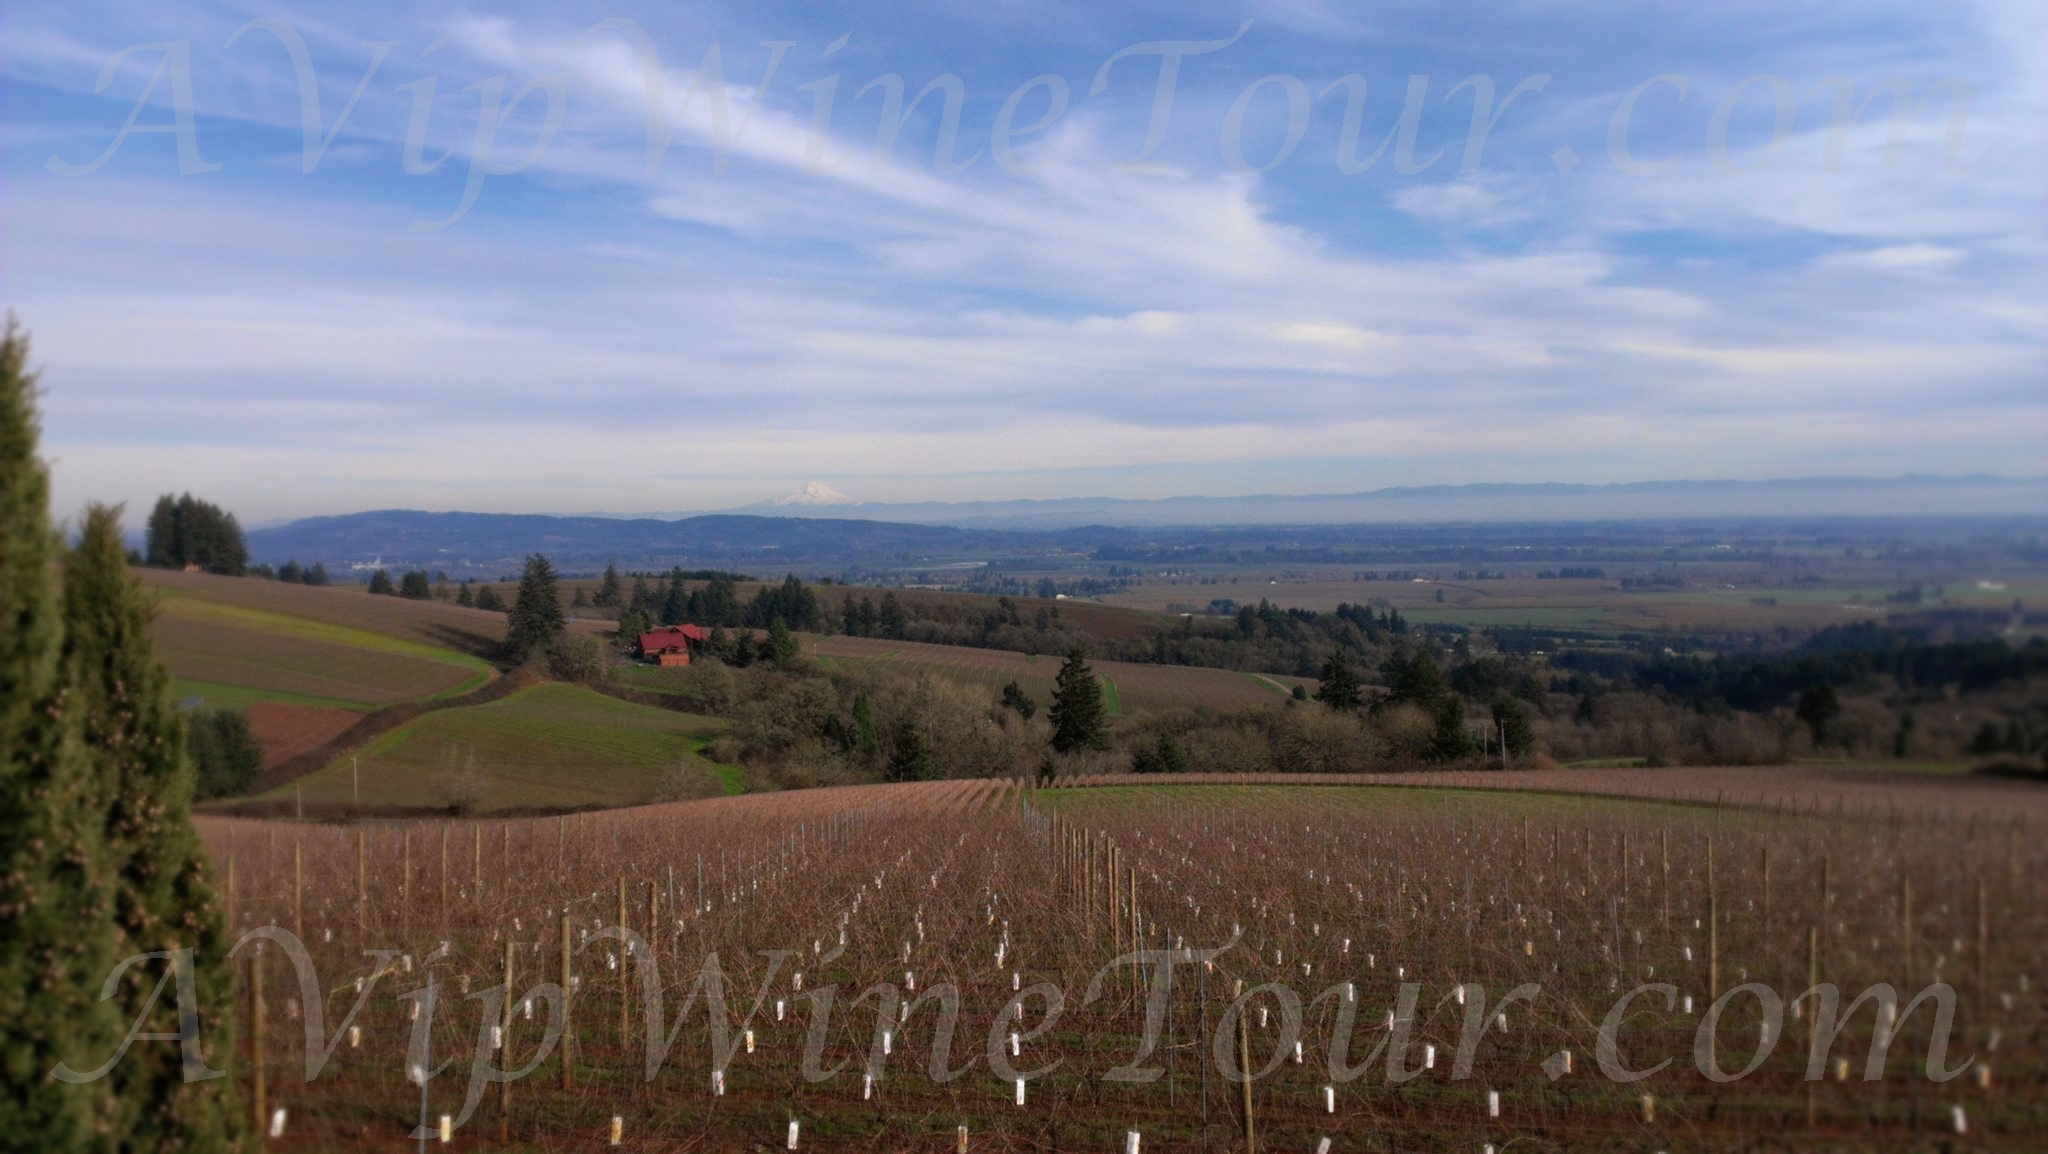 VIPS_WineTour_1_Edit_WaterMark_2_15